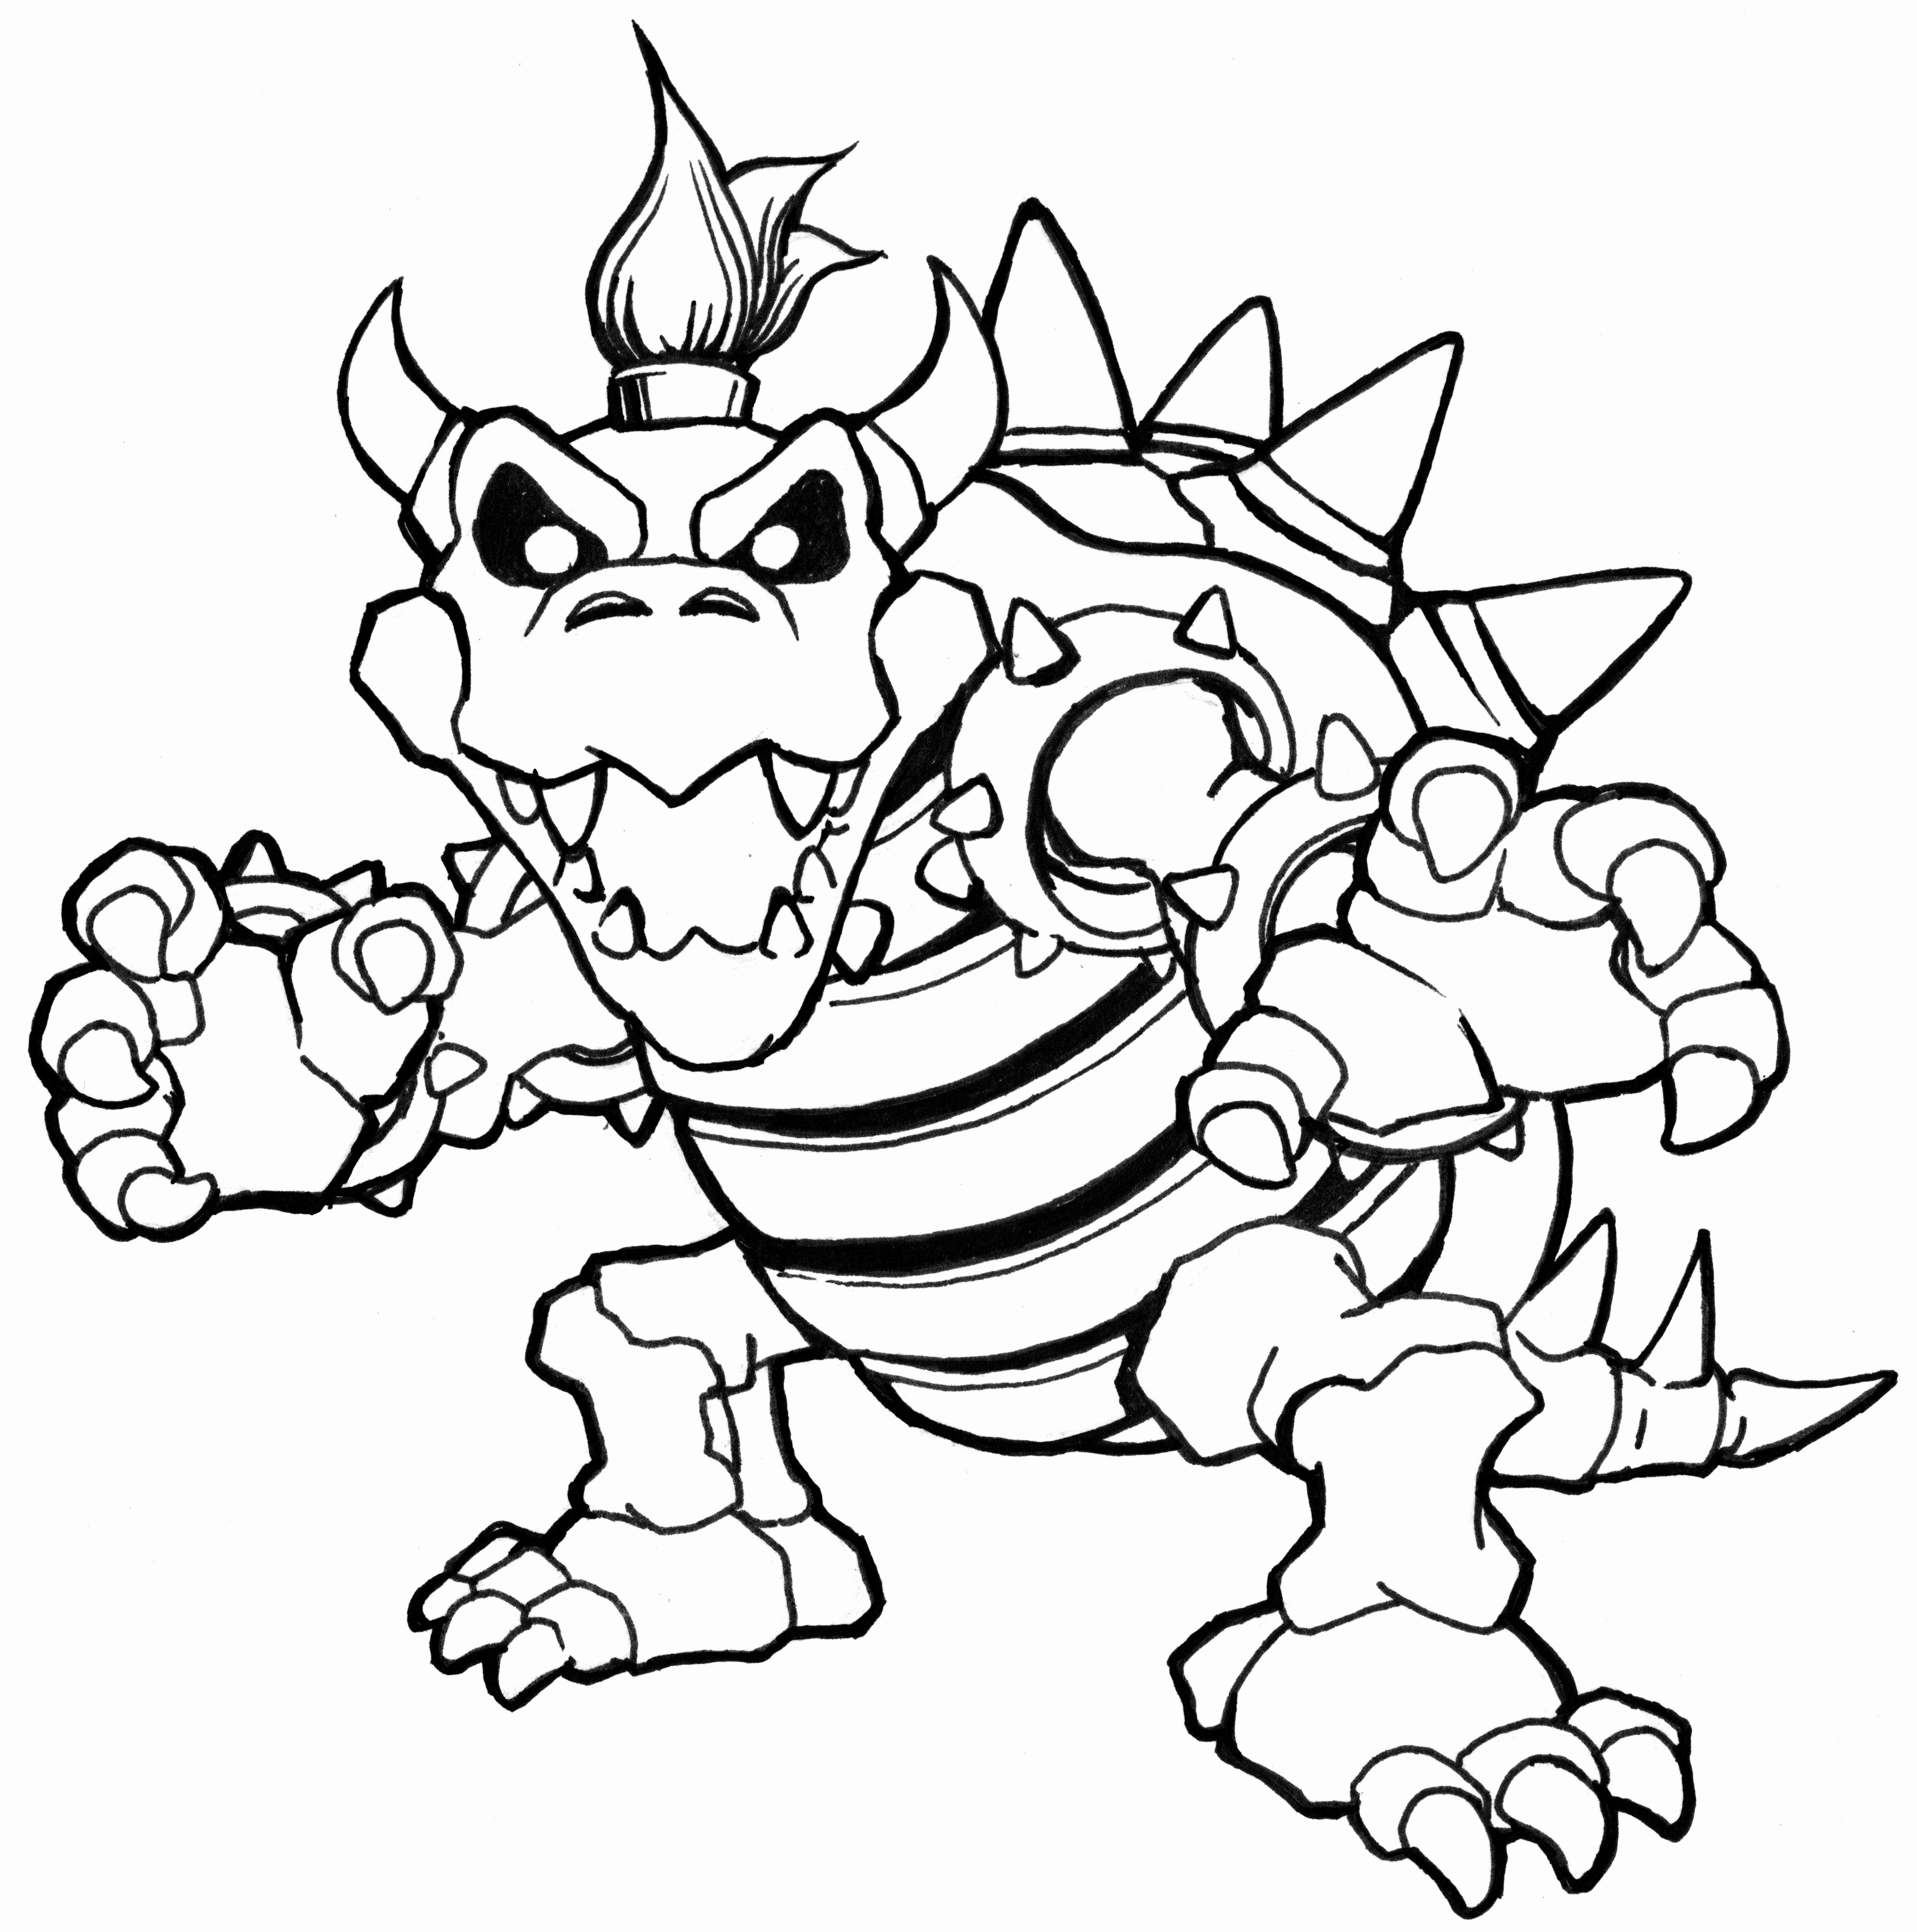 picture of bowser bowser head smash bros series icon by mrthatkidalex24 on bowser picture of